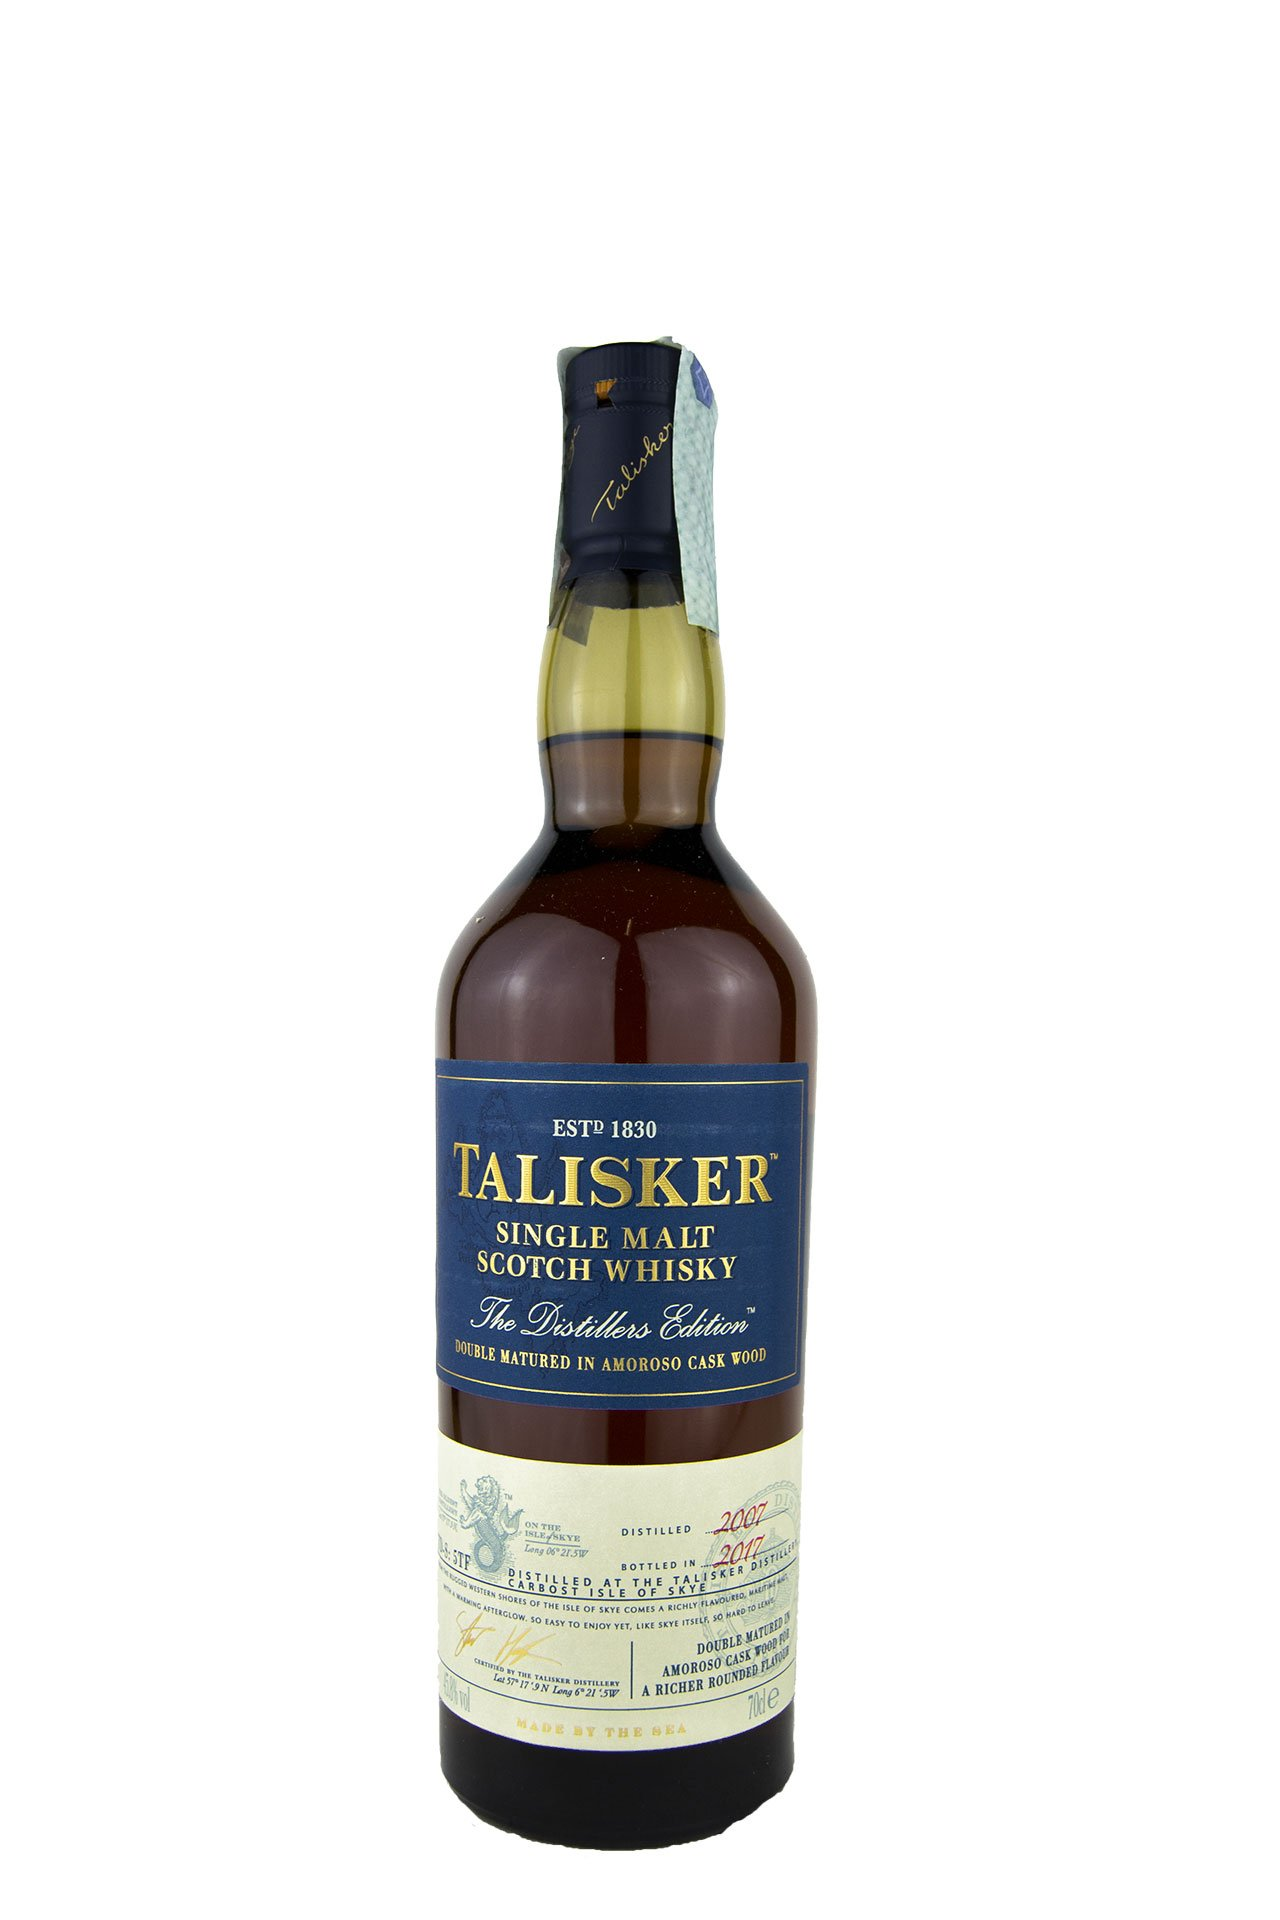 Talisker – The Distillers Edition 2007